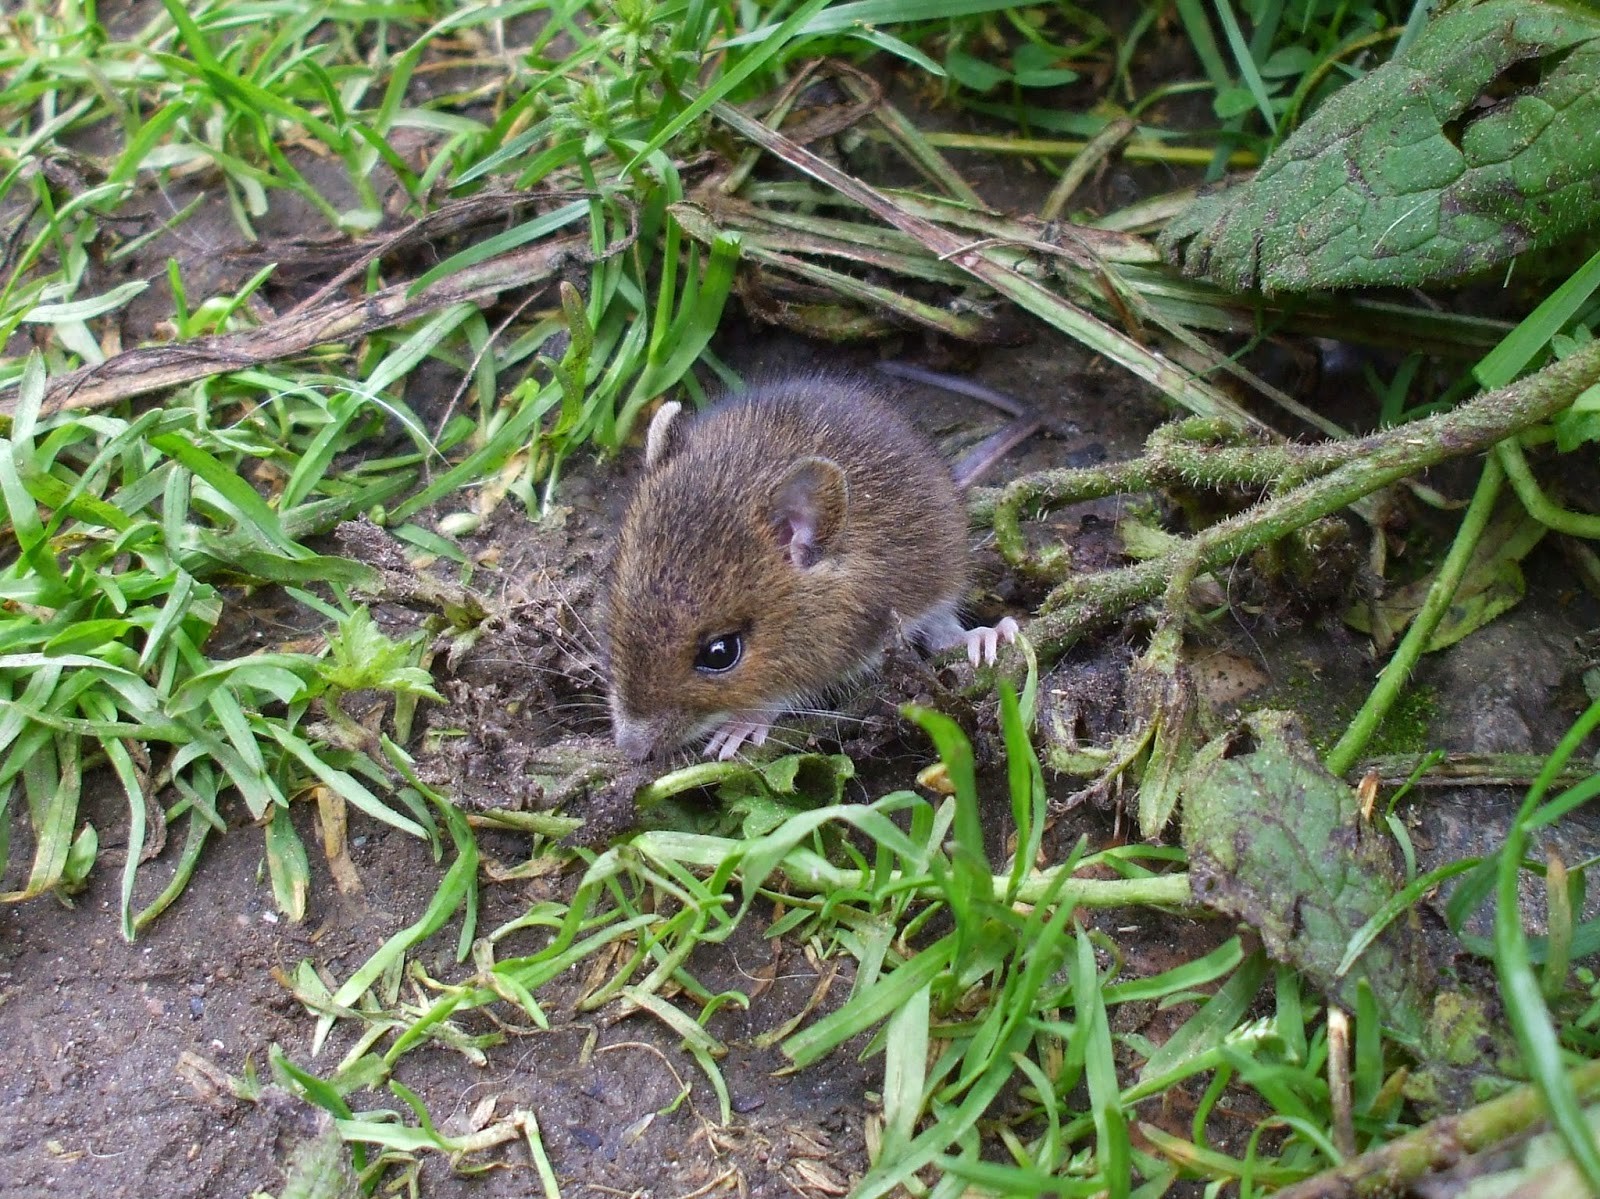 Fieldmouse by Sea Penguin 7/14